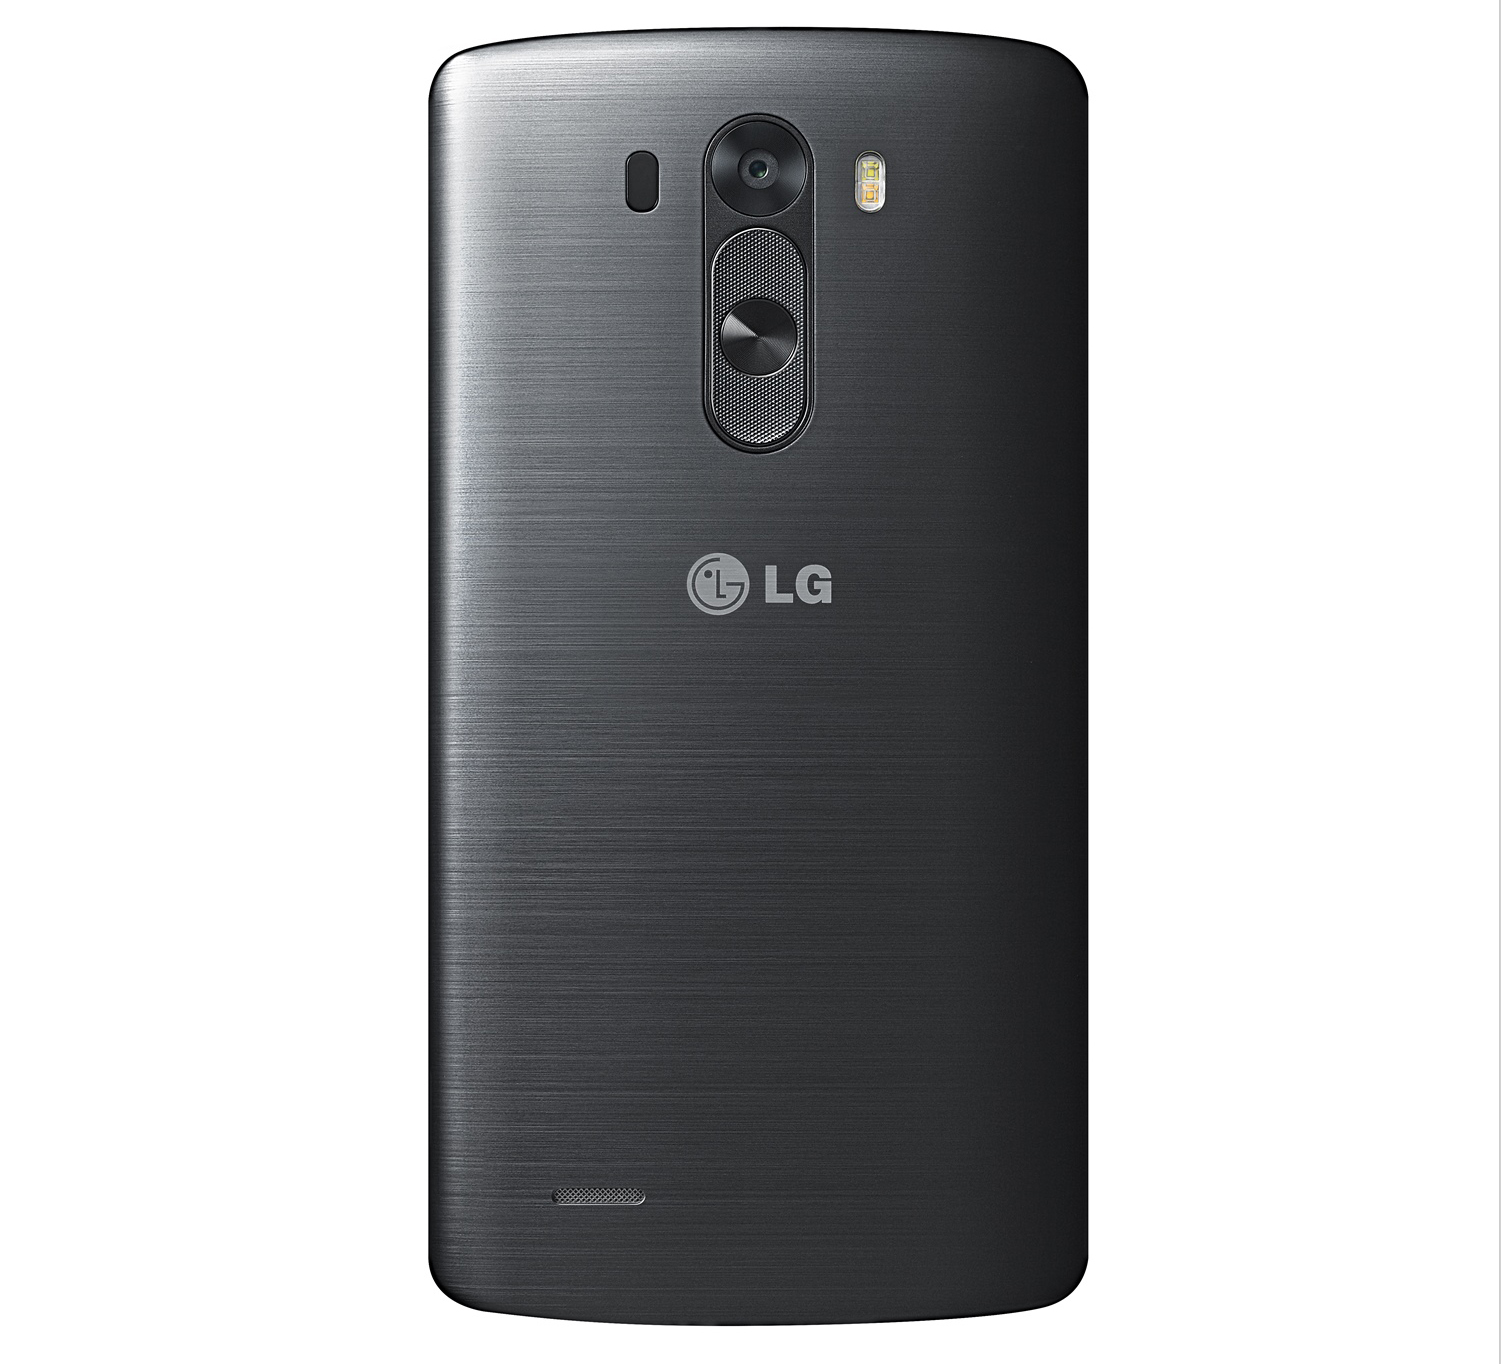 The back of the LG G3, with the camera and buttons